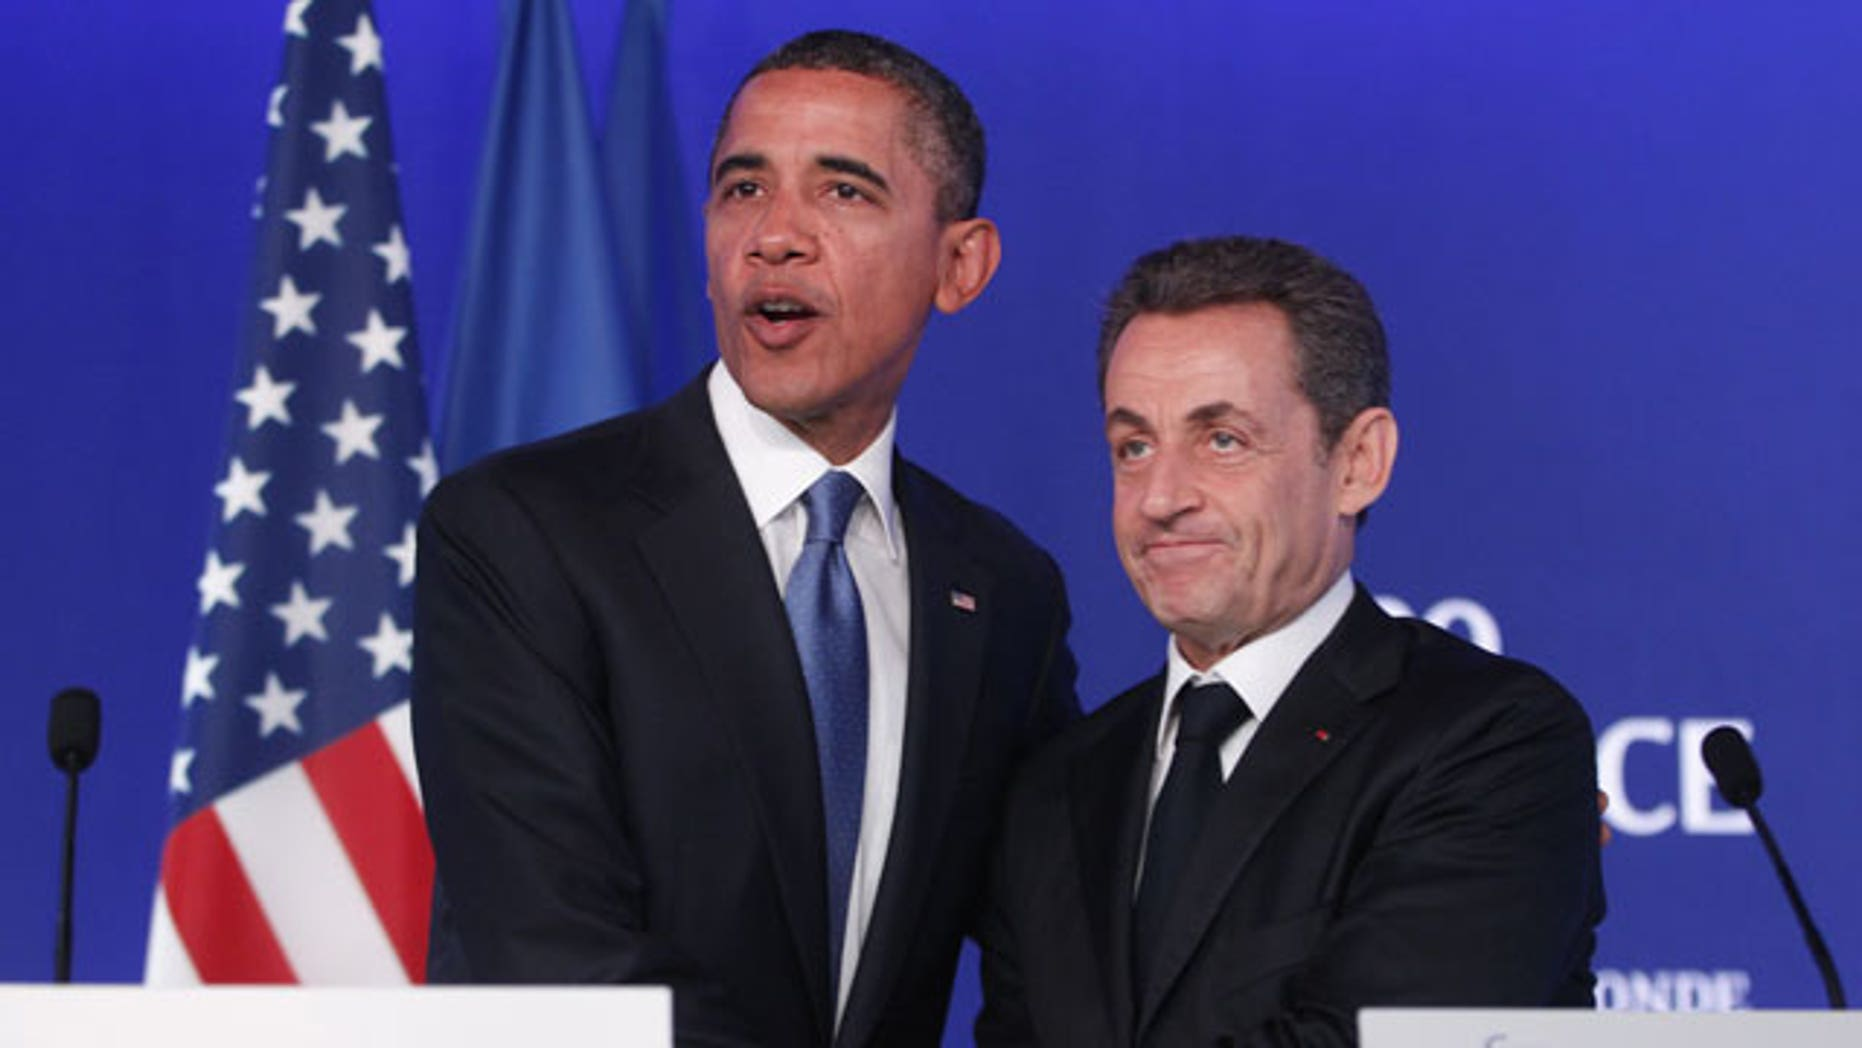 November 3, 2011: U.S. President Barack Obama, left, and French President Nicolas Sarkozy shake hands after they made statements to reporters after their meeting at the G20 Summit in Cannes.